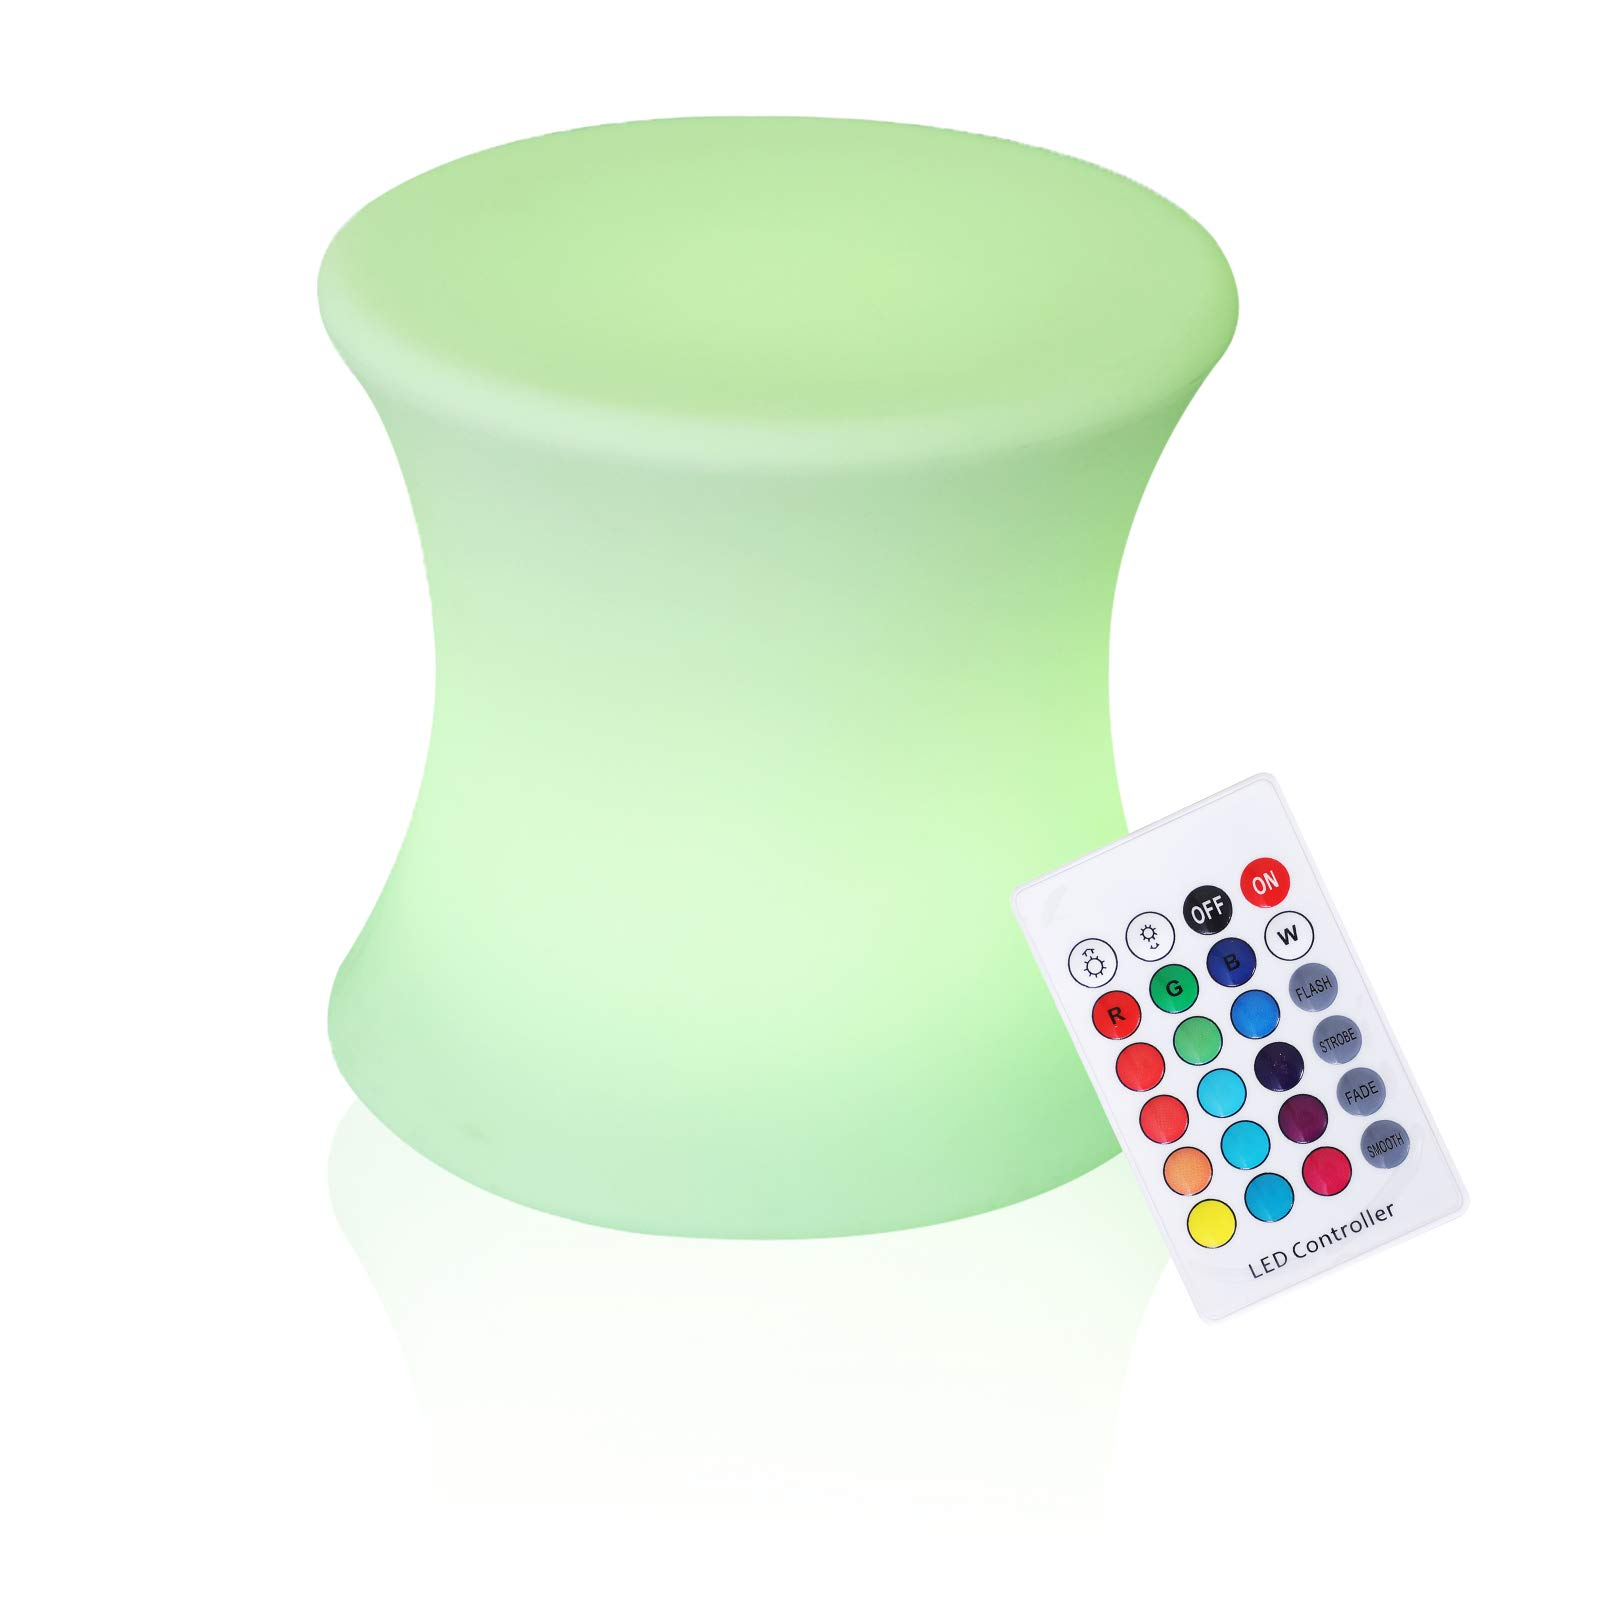 Outsunny 16'' Outdoor Color Changing LED Light Lamp Stool with Remote Control by Outsunny